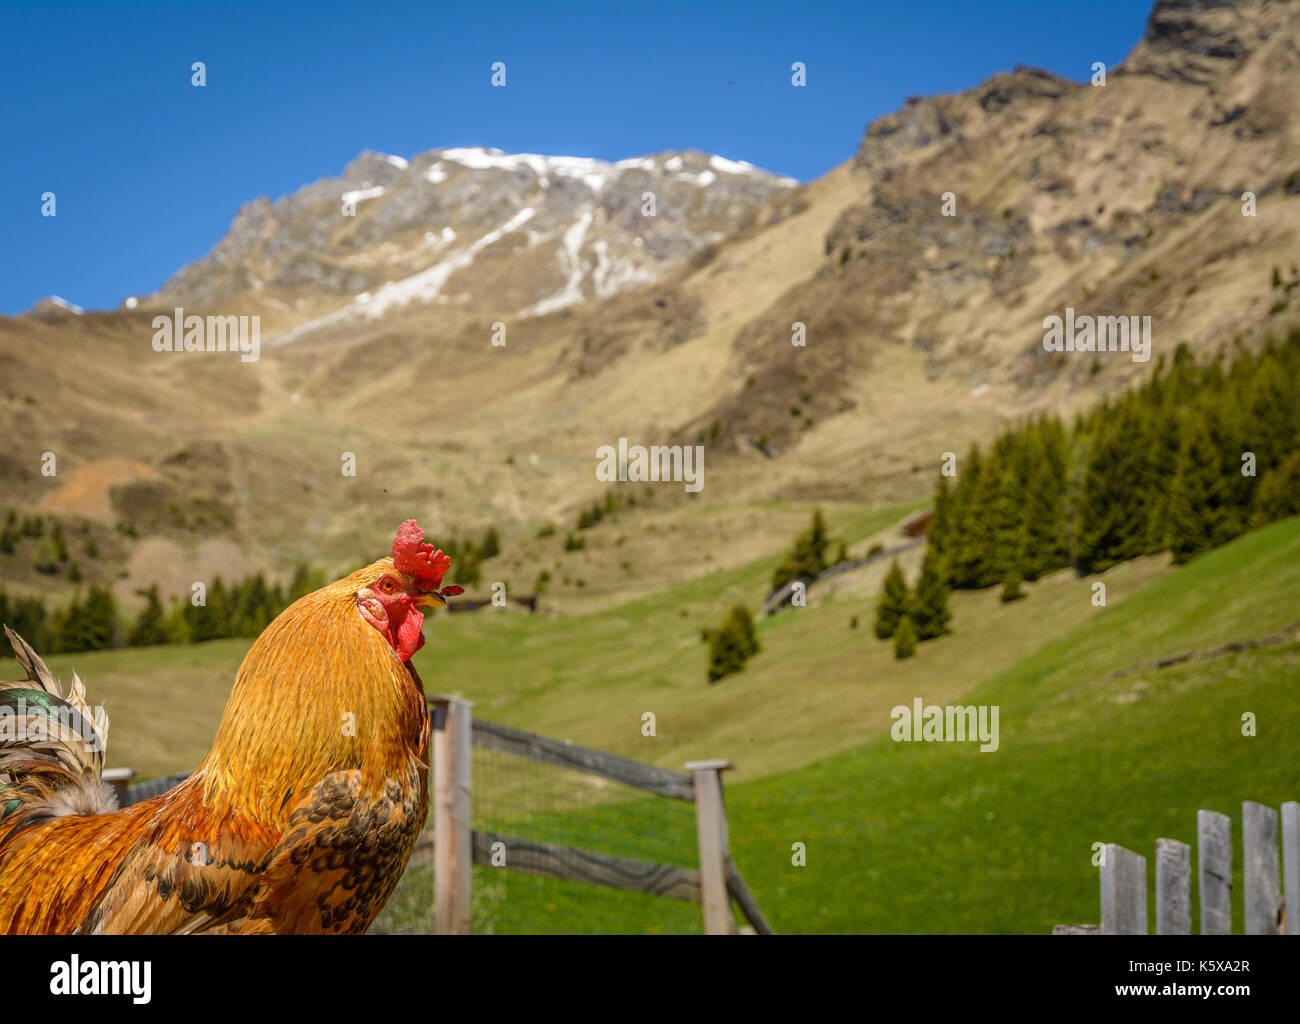 a red rooster isolated in a mountain village in the background, South Tyrol, Trentino Alto Adige, Ridanna valley, italy - Stock Image